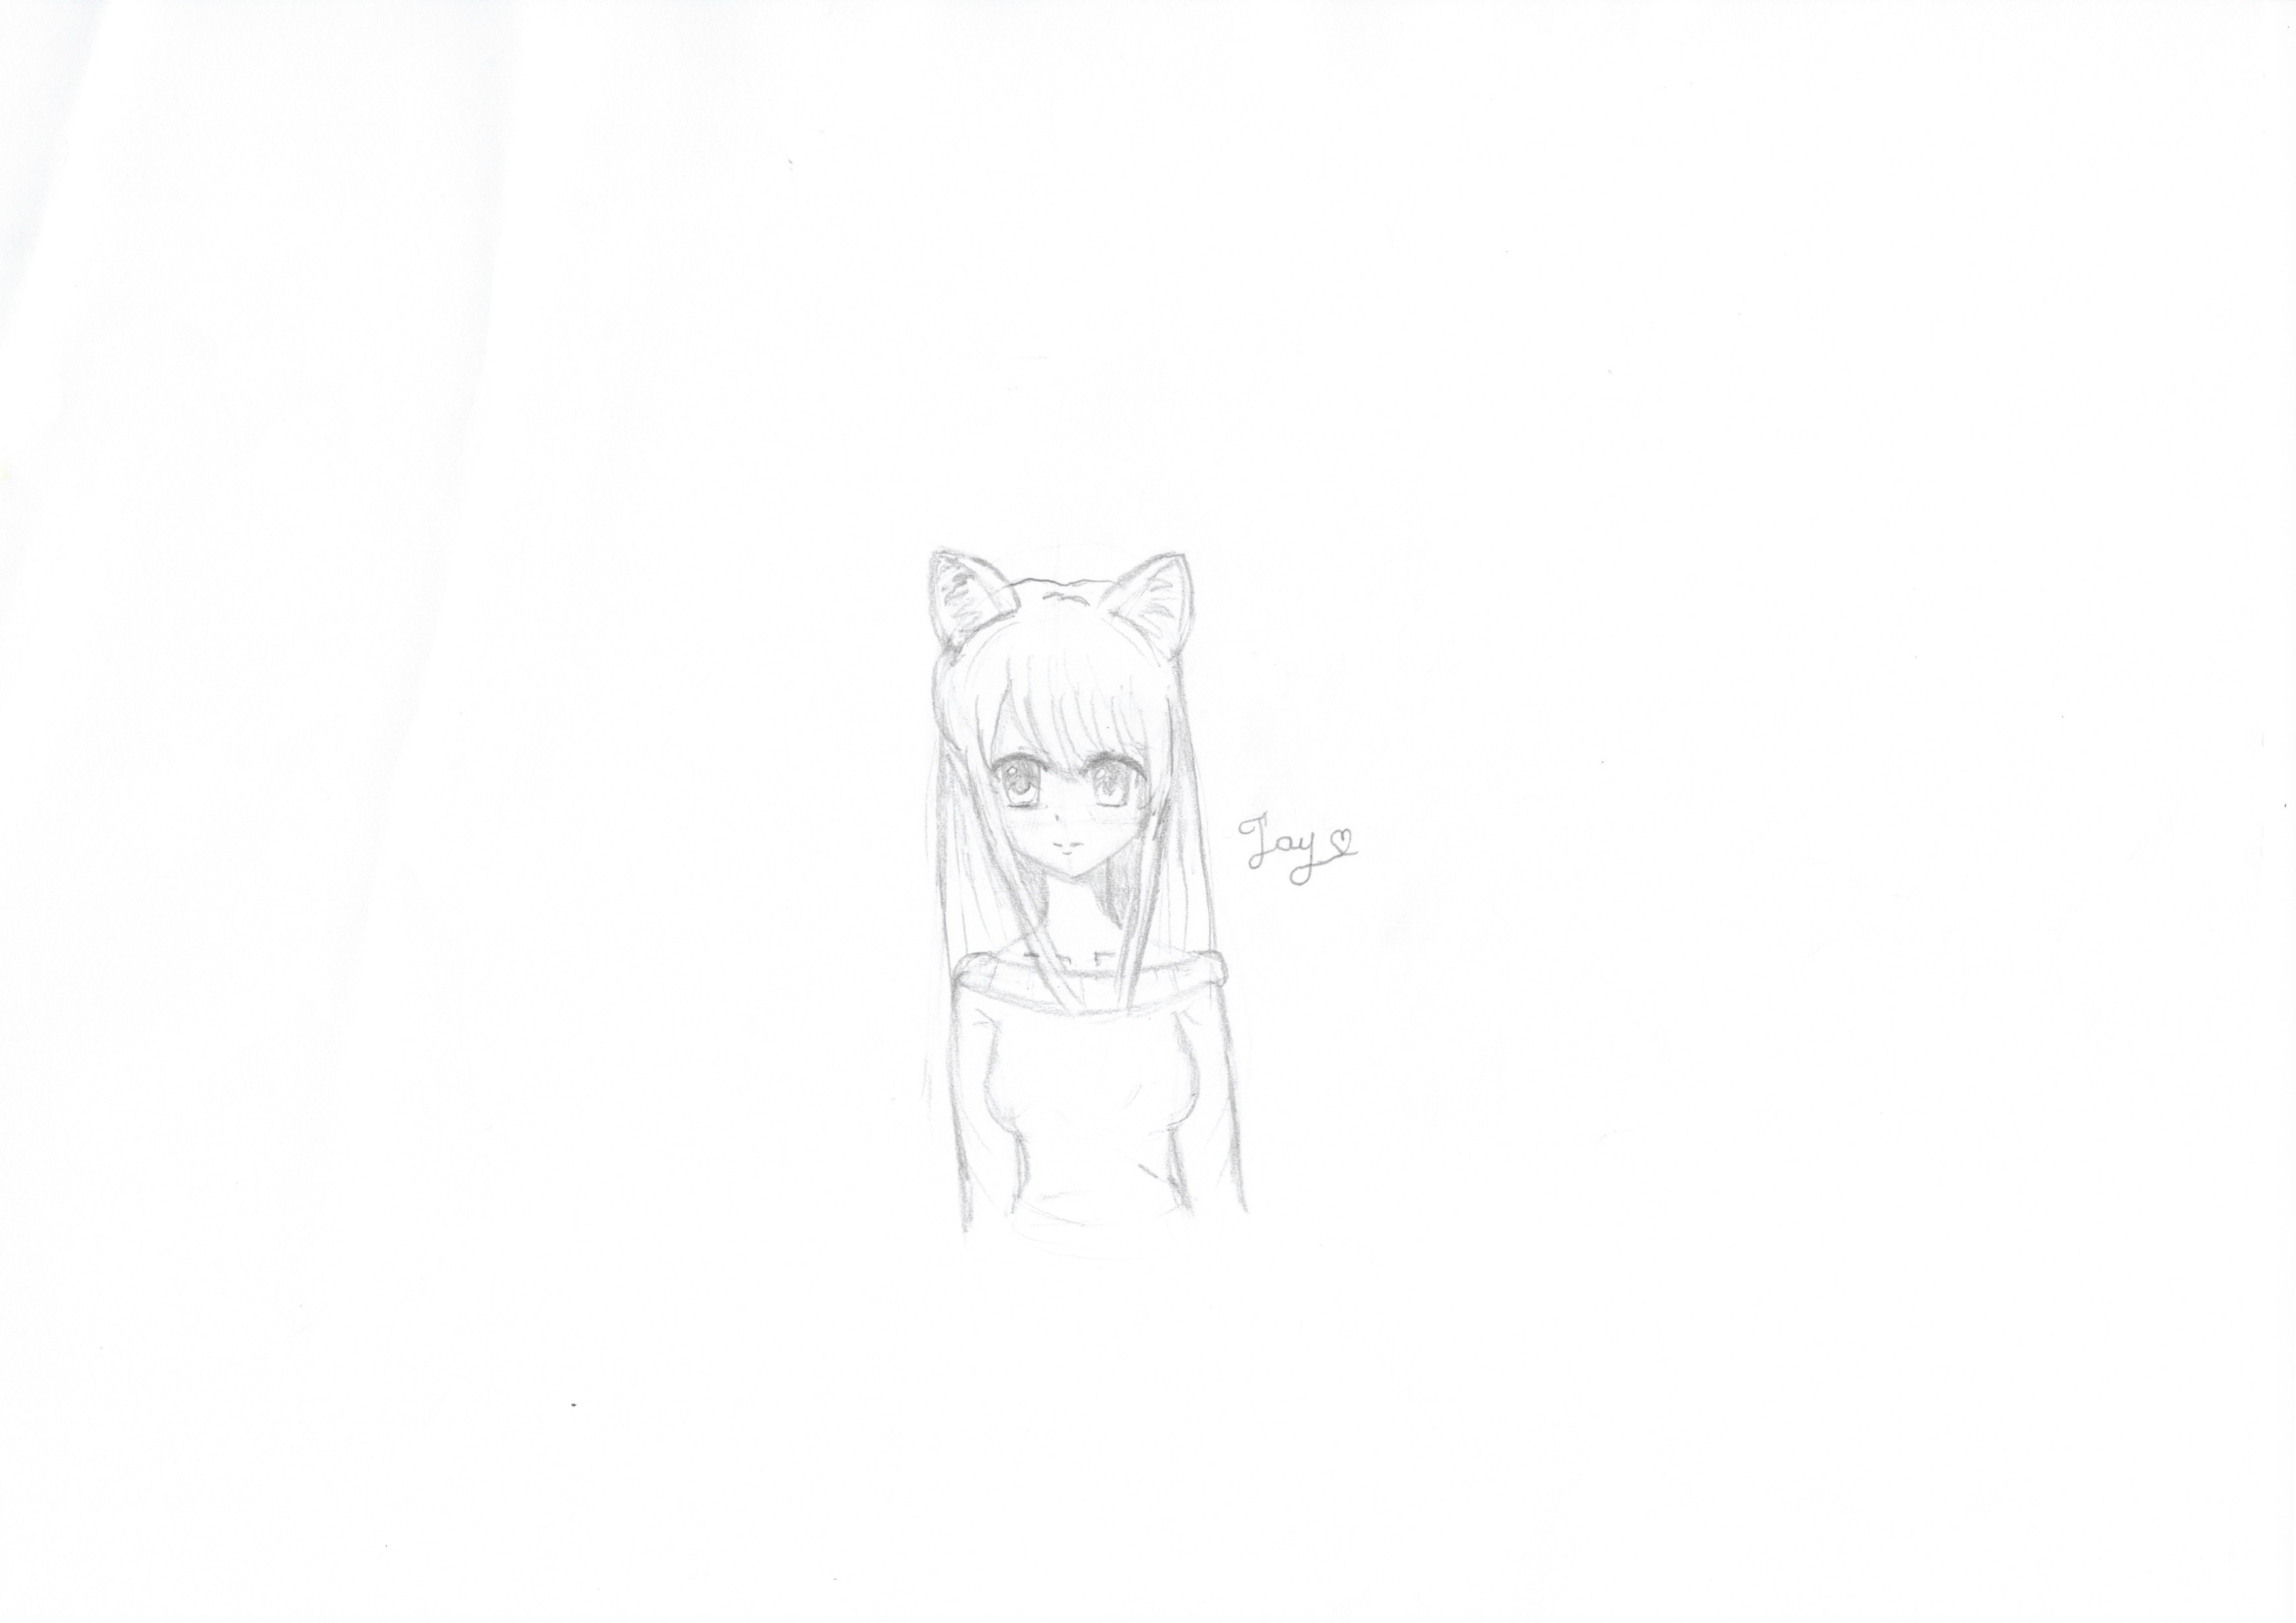 How To Draw A A Kawaii Anime Girl Easy Easy For Beginners Part 2